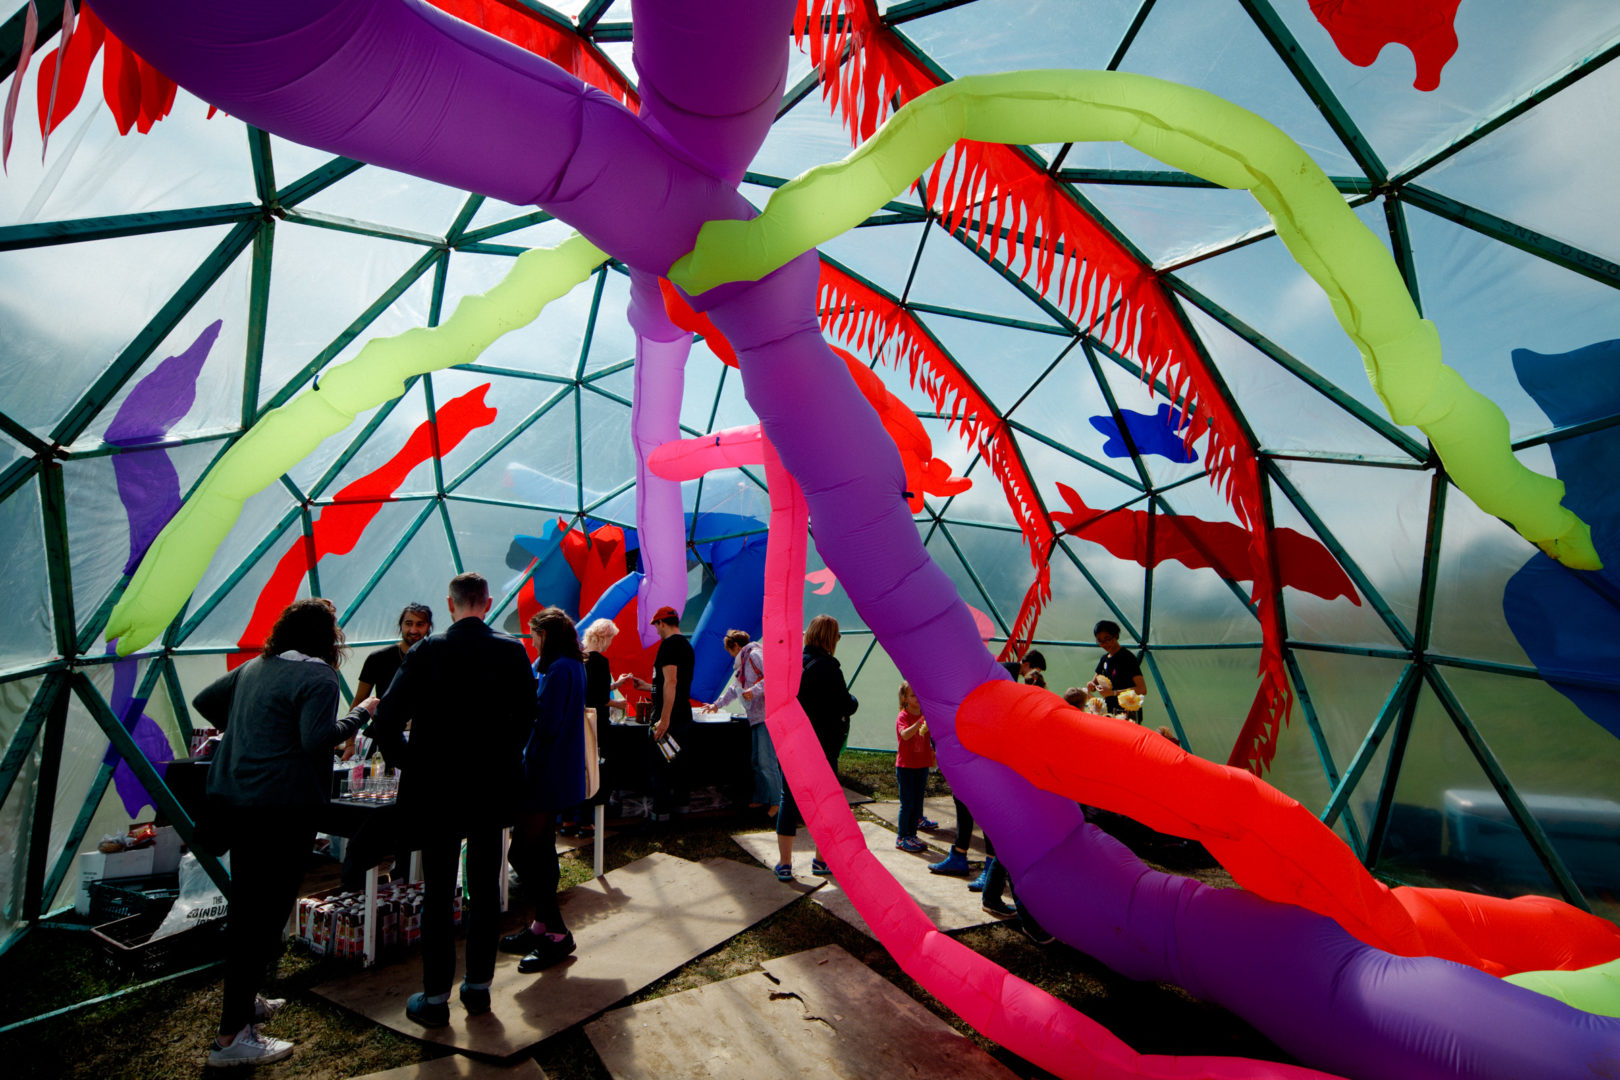 Inside Lunarnova Campout by Pester & Rossi